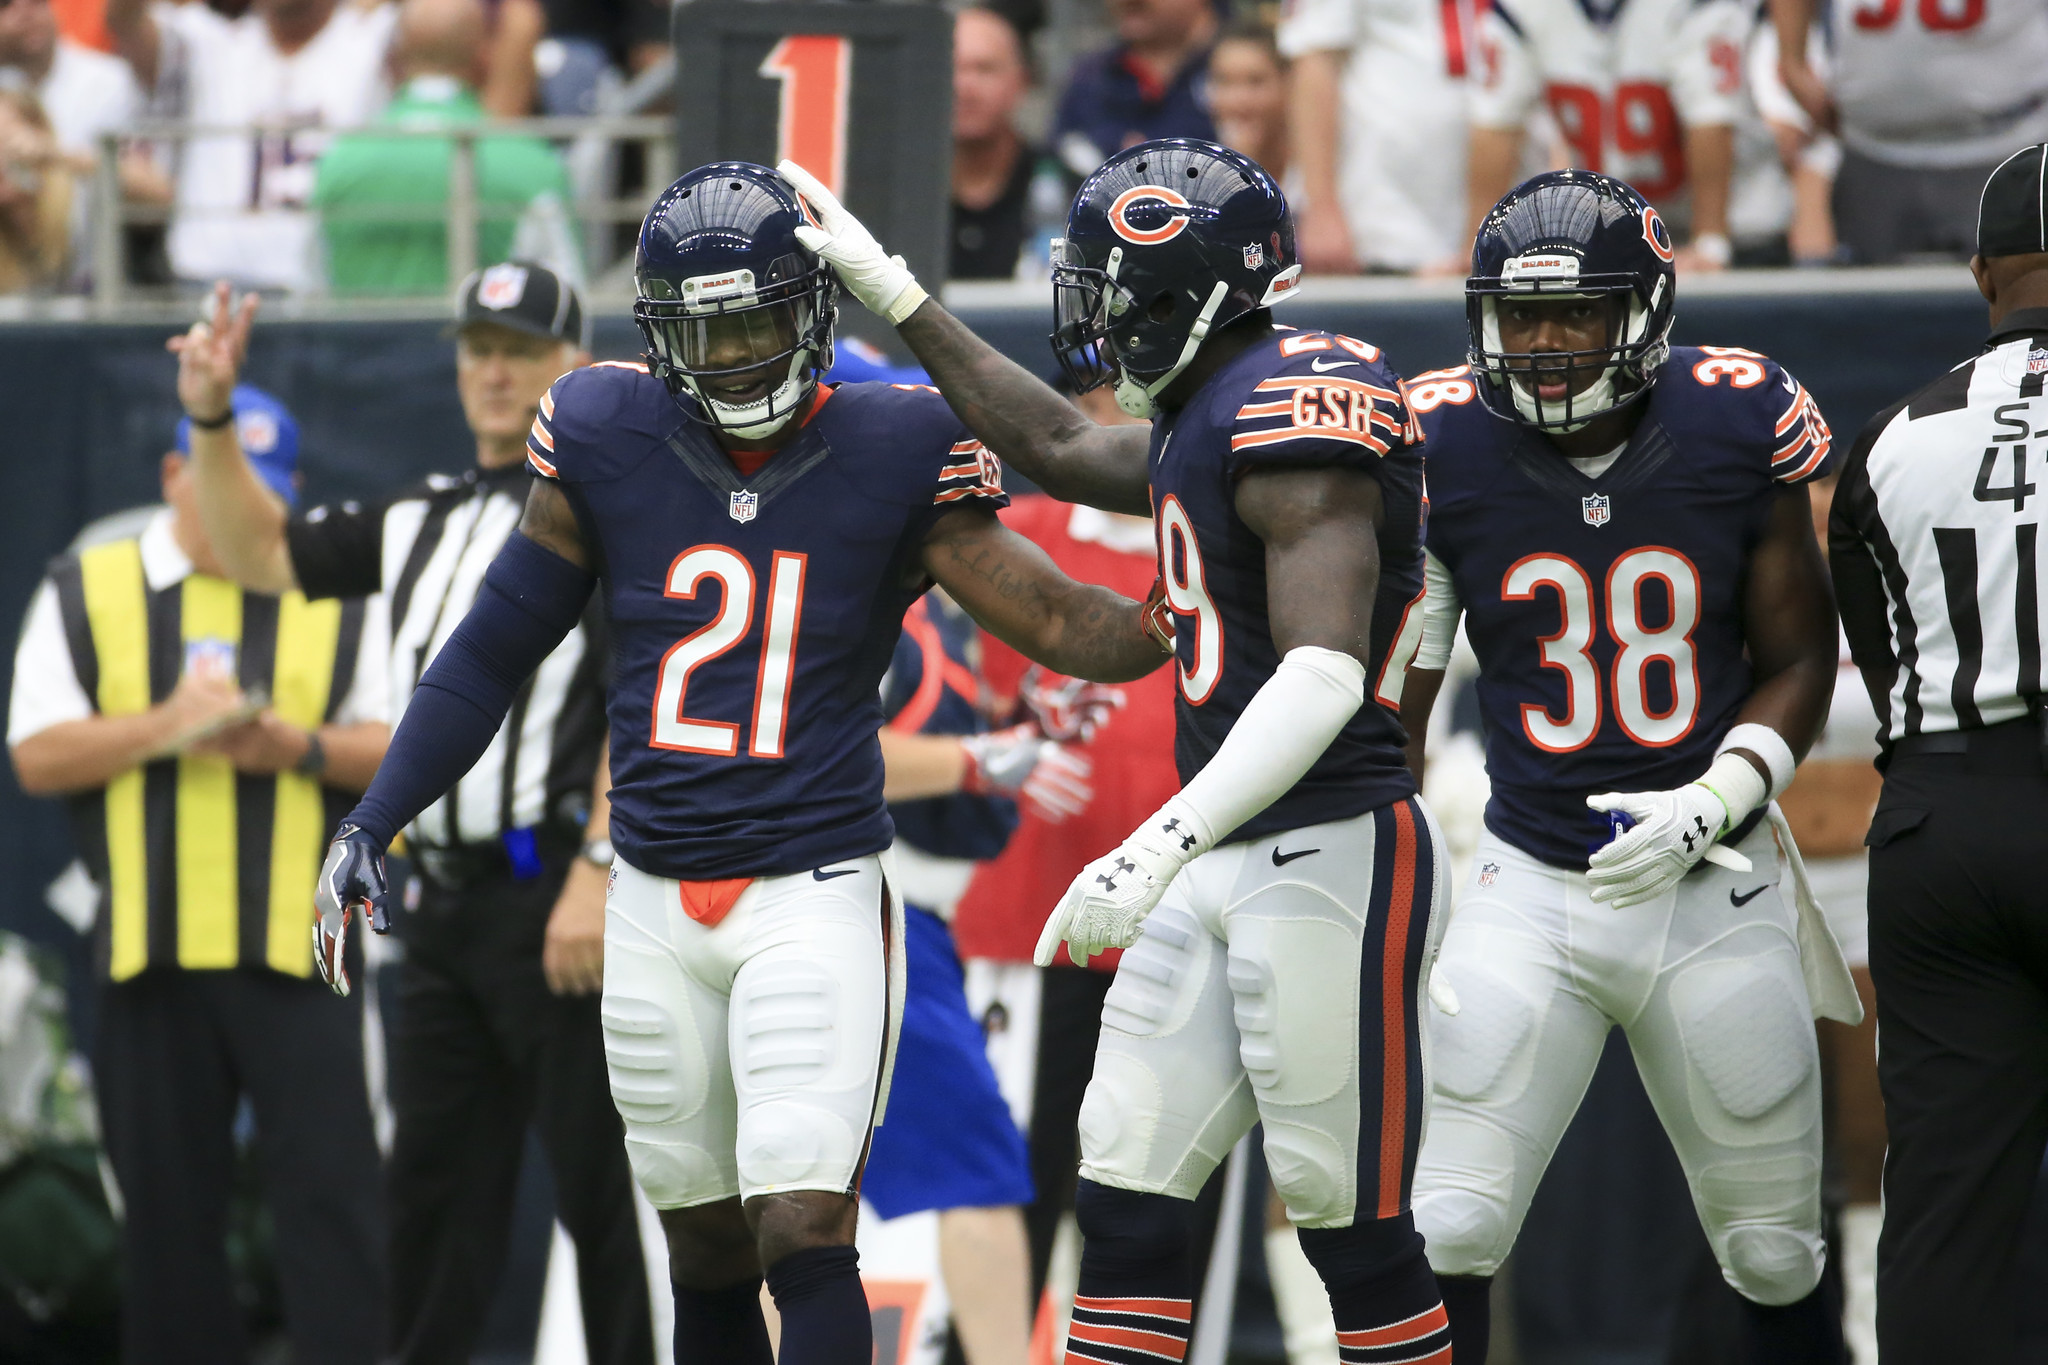 Ct-young-secondary-biggs-bears-essentials-spt-1002-20161001